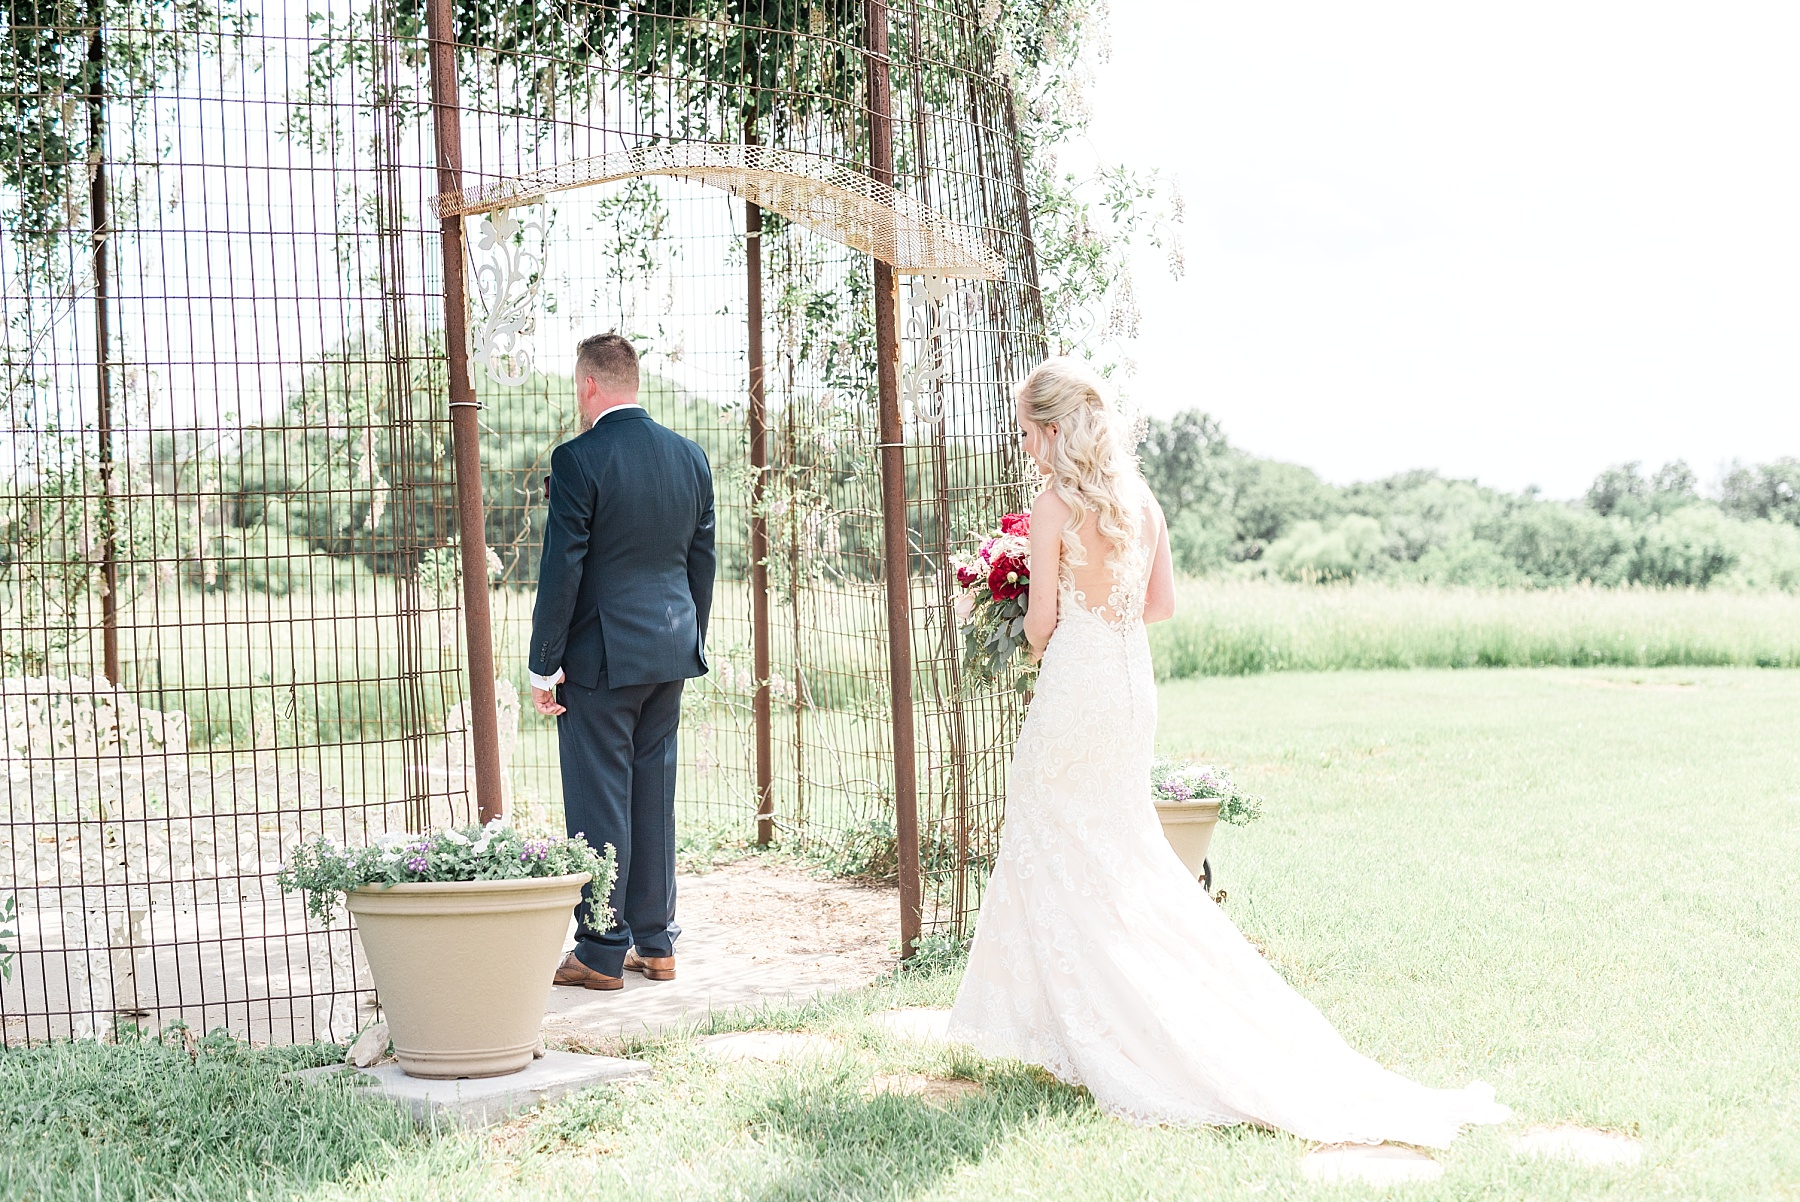 Light and Airy Spring Shabby Chic Wedding at Bessie's Barn Iowa by Kelsi Kliethermes Photography_0012.jpg